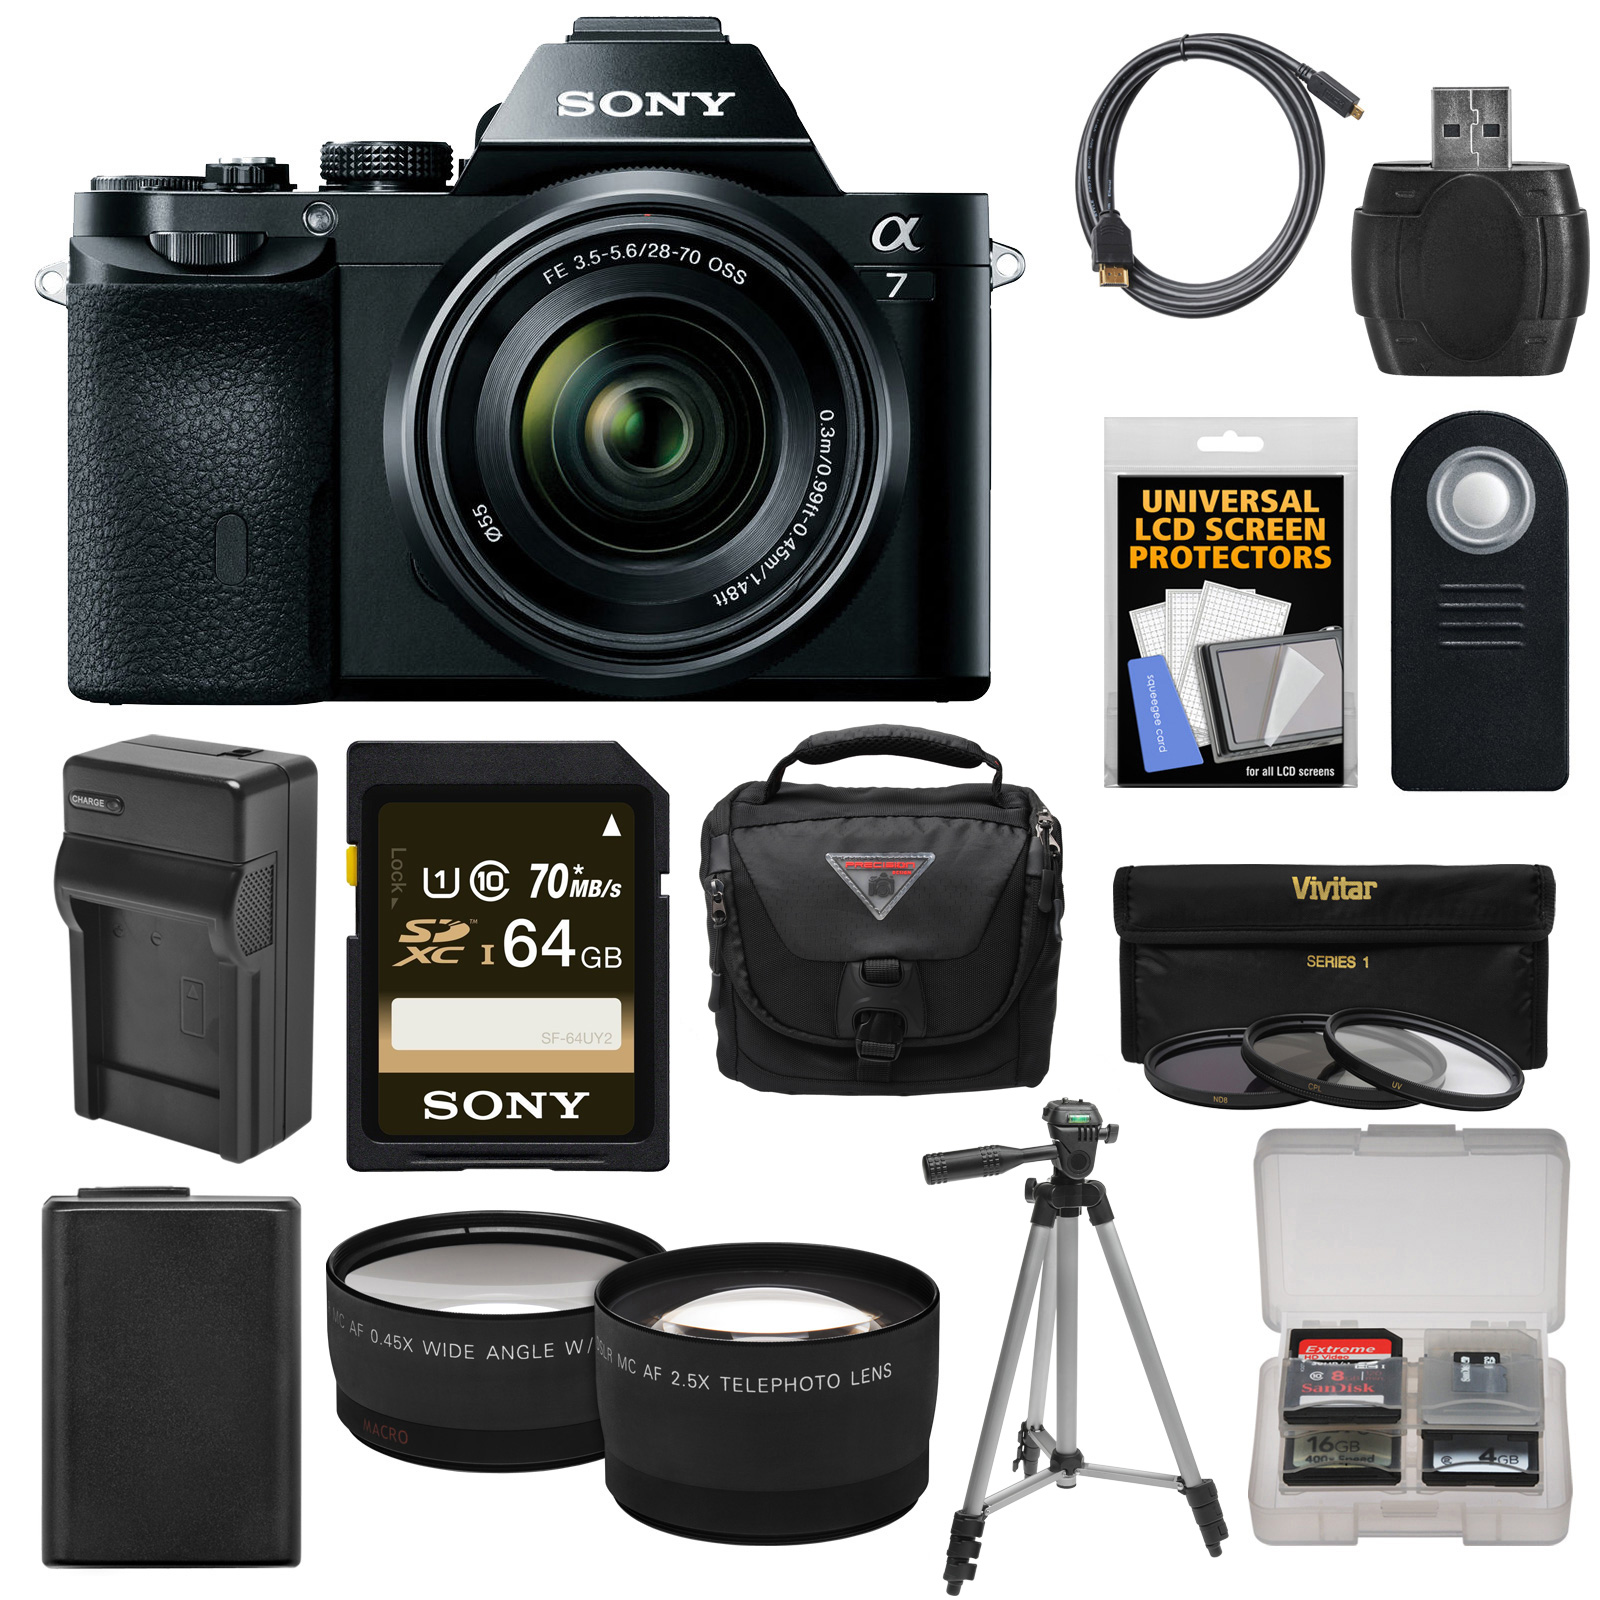 Sony Alpha A7 Digital Camera & 28-70mm FE OSS Lens with 64GB Card + Battery & Charger + Case + Tripod + Tele/Wide Lenses Kit